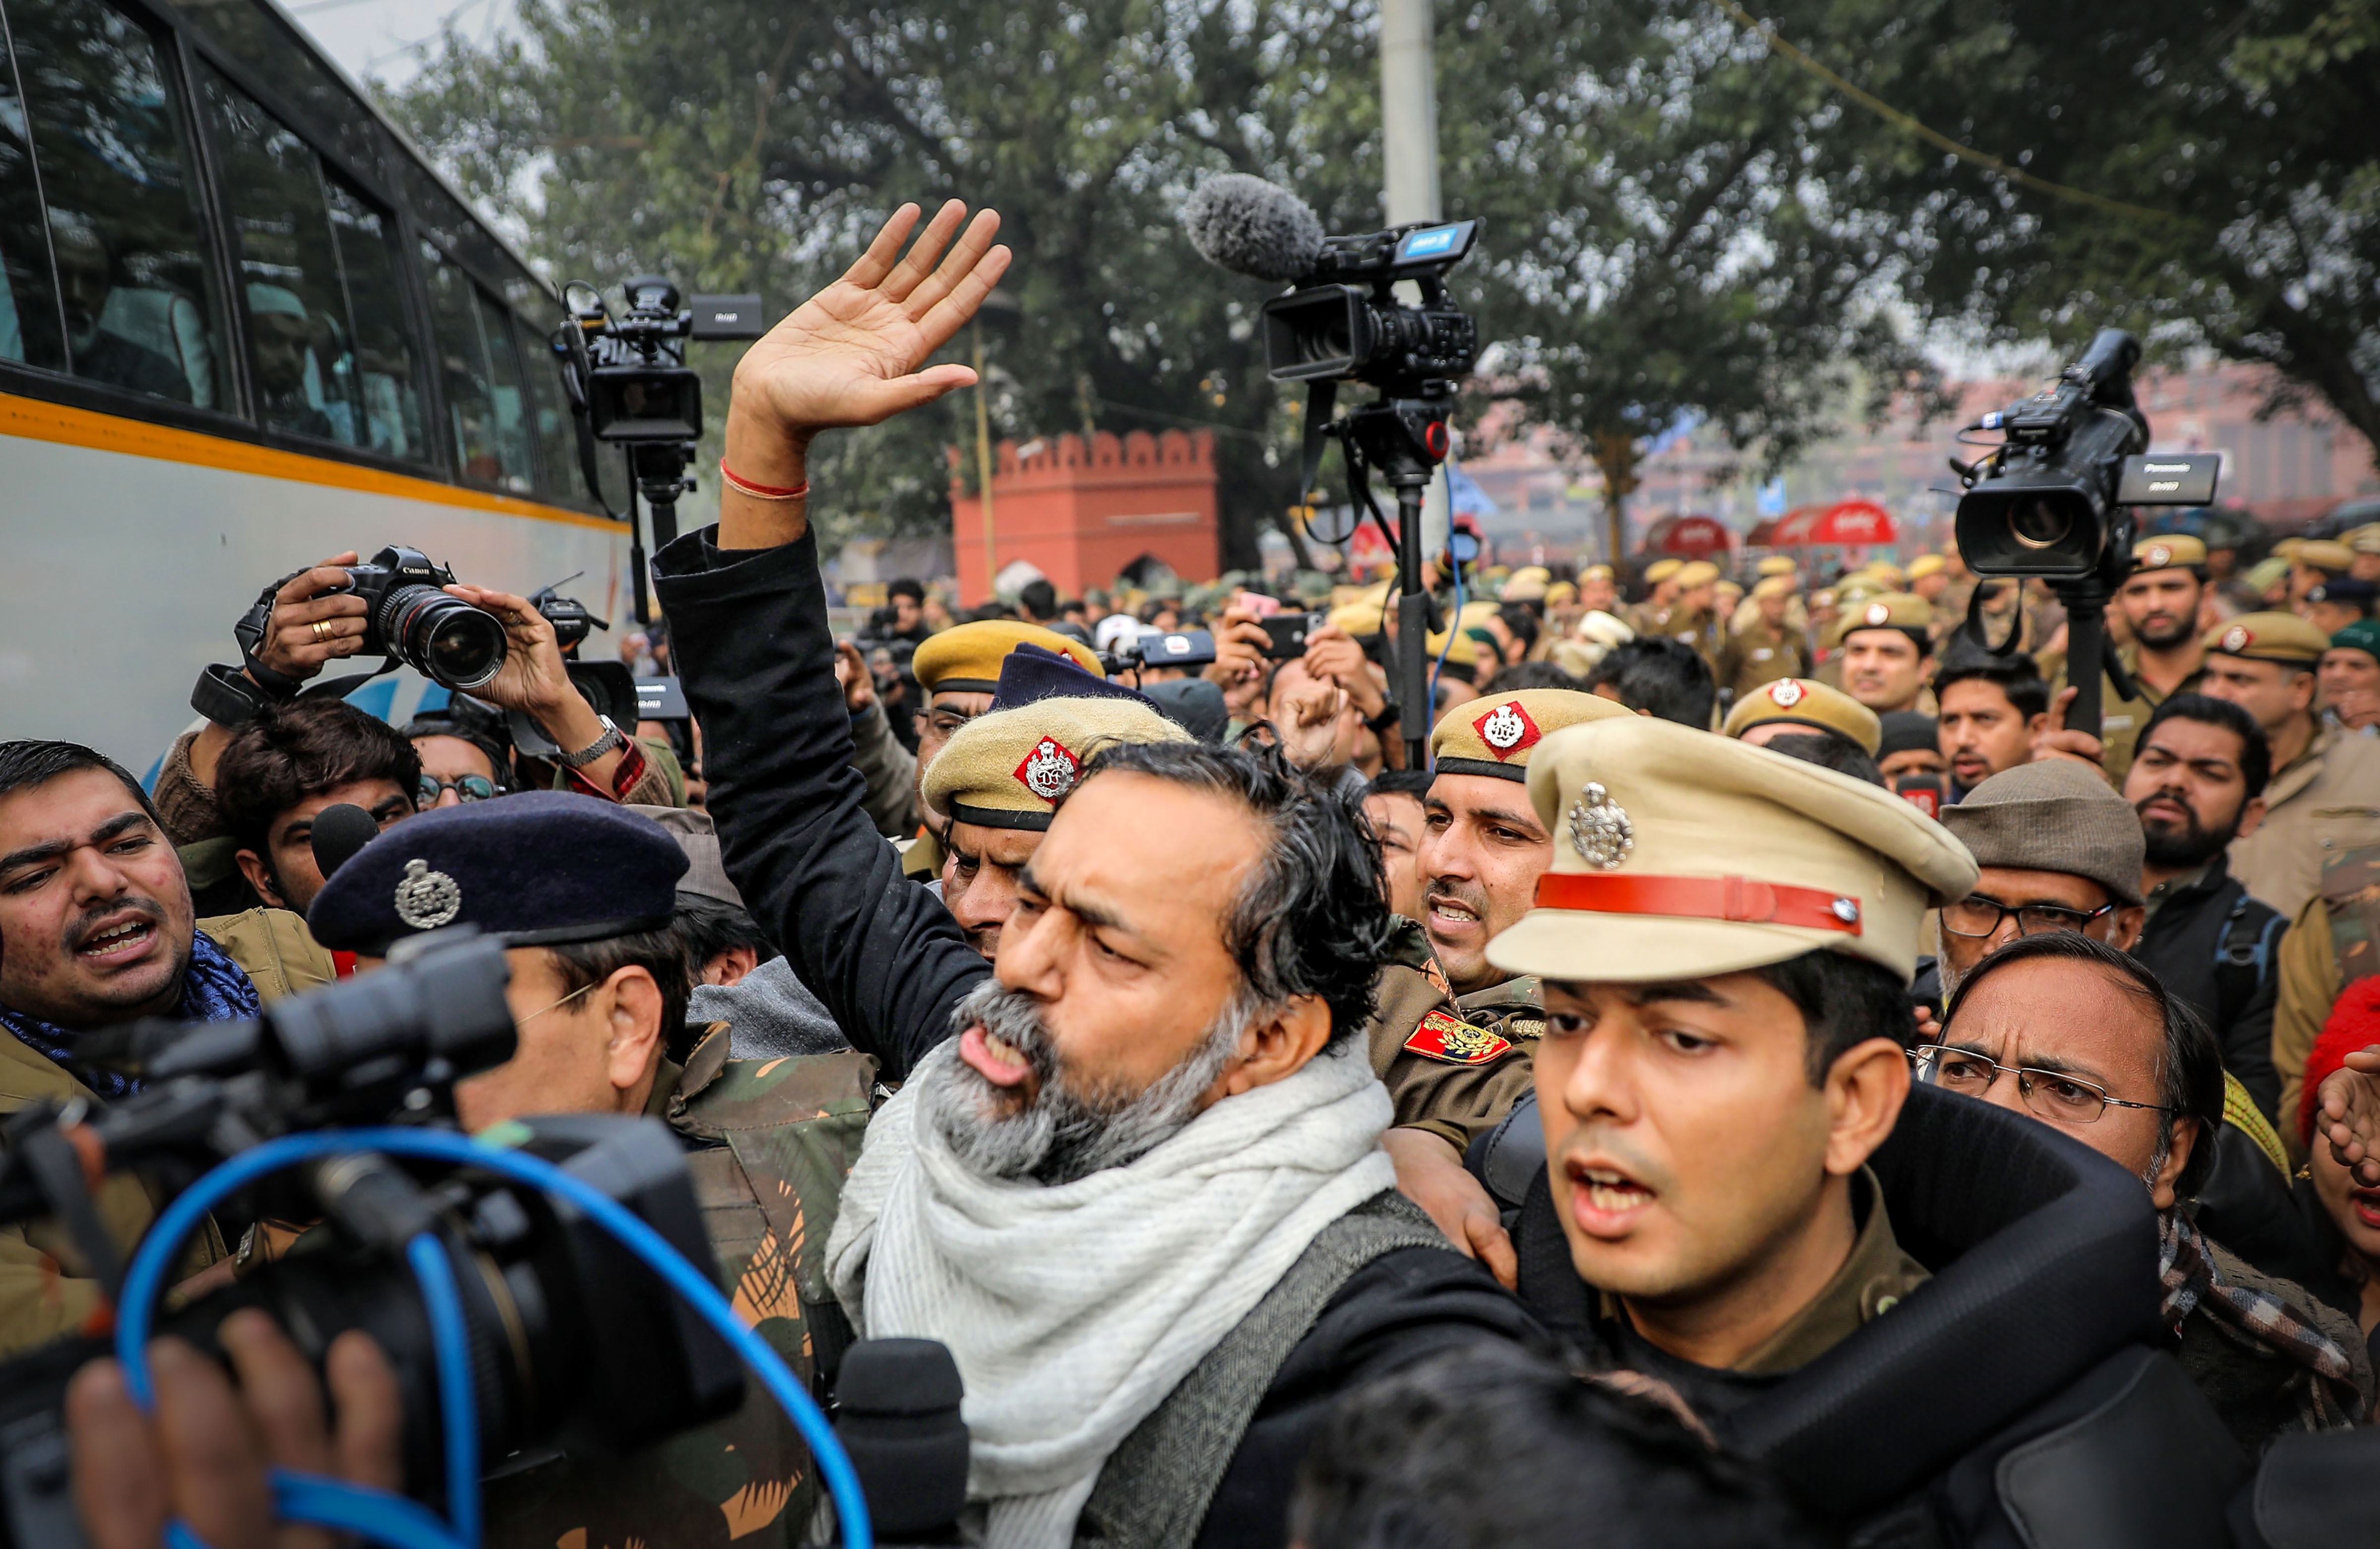 Swaraj Abhiyan founder and activist Yogendra Yadav is detained by police for defying prohibitory orders imposed by the Delhi police in the area during an anti-Citizenship Act protest, at Red Fort, in New Delhi, Thursday, December 19, 2019.